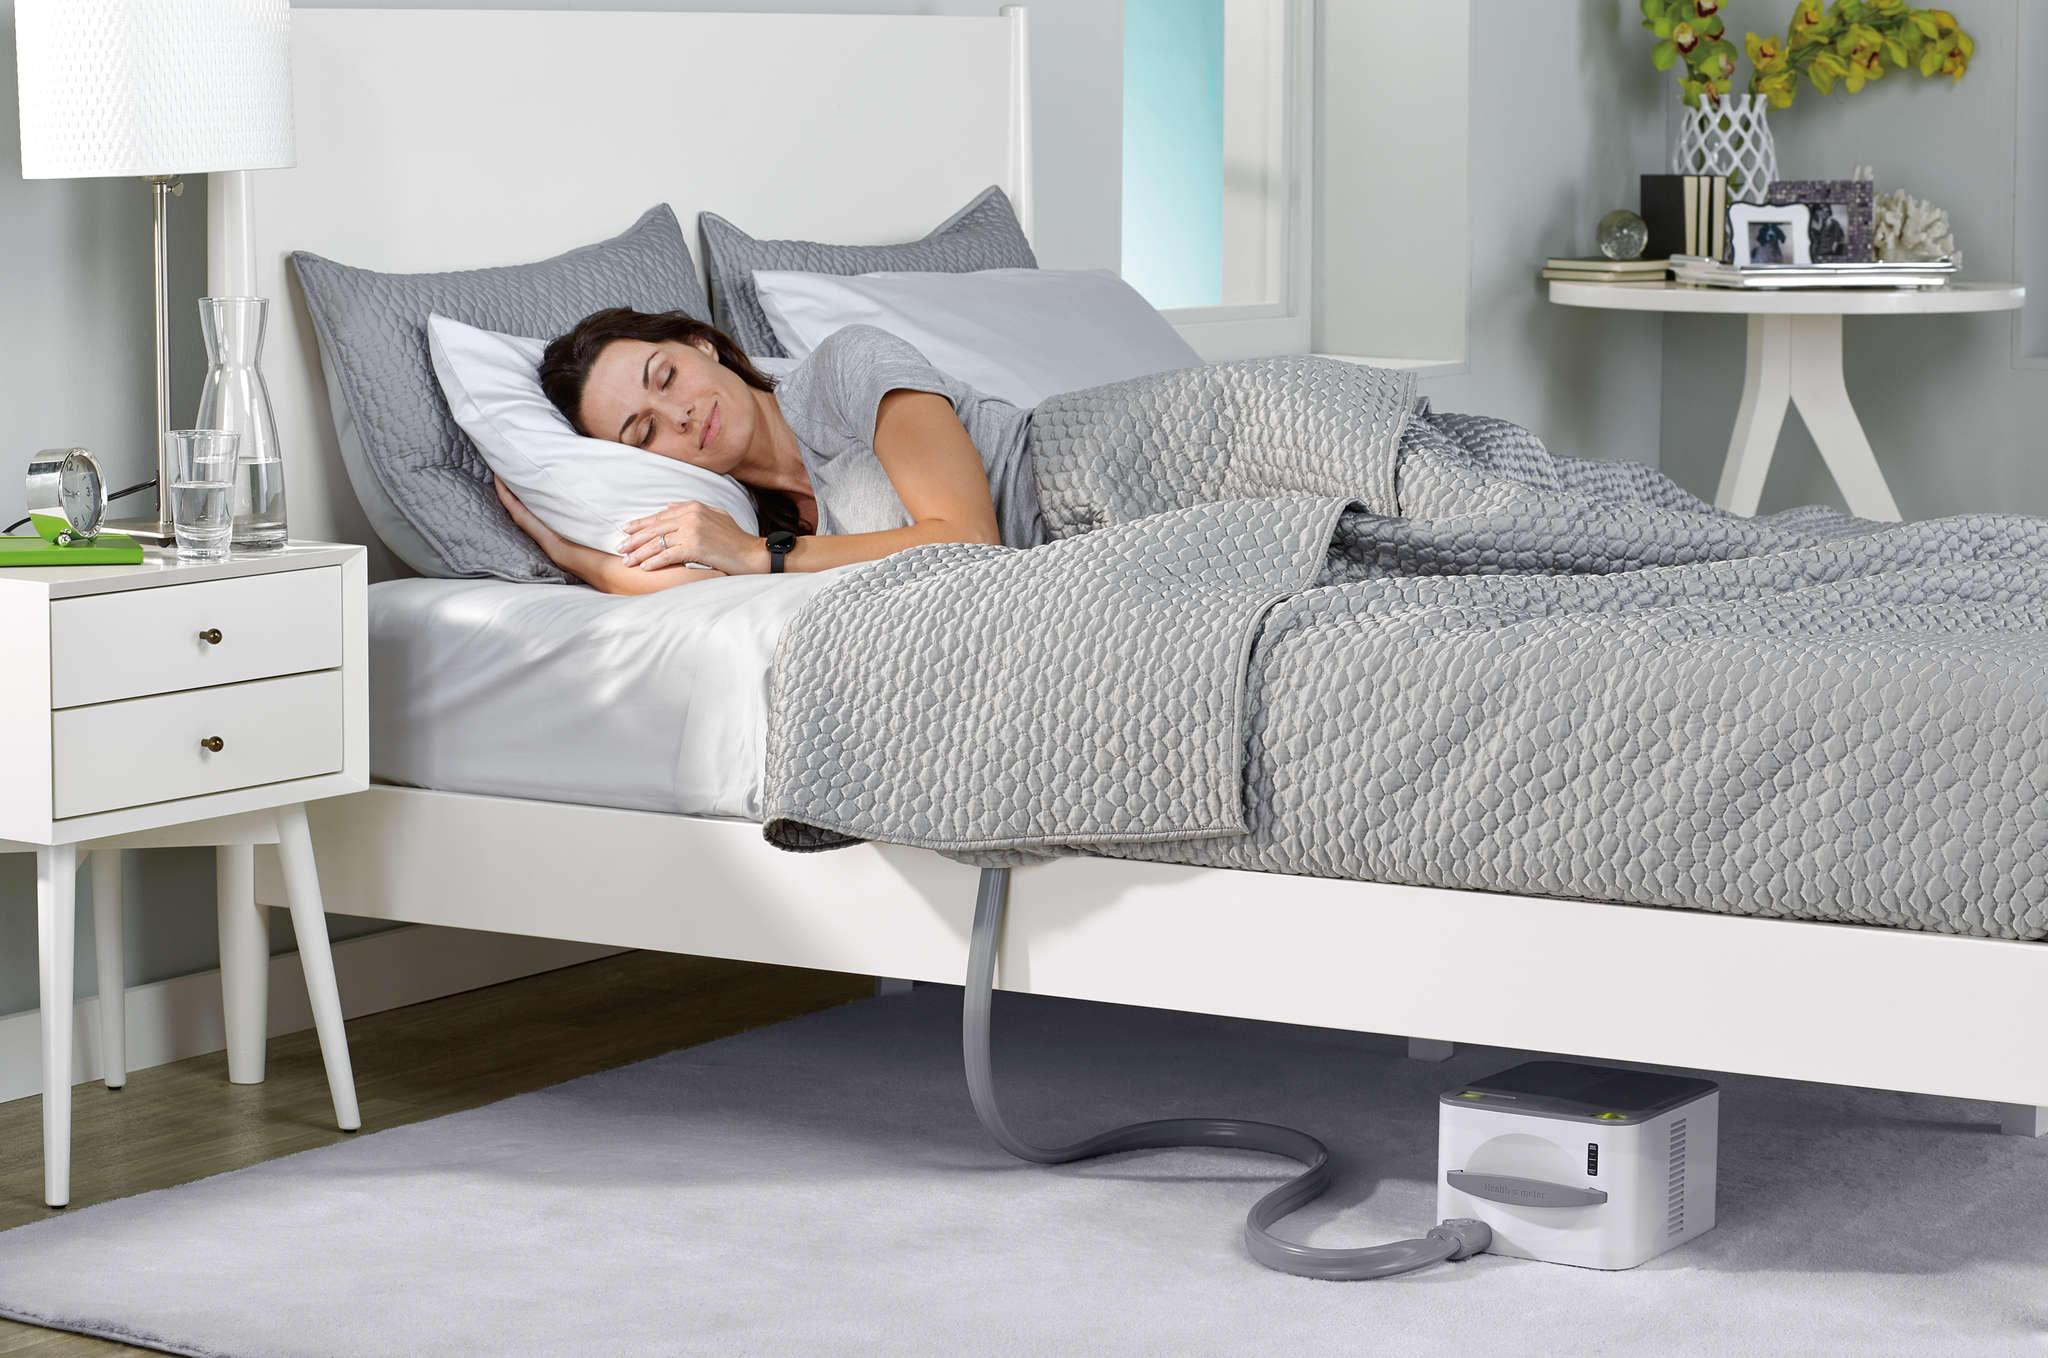 The Nuyu sleep system adjusts bed temperature to keep in step with the body´s circadian rhythm.